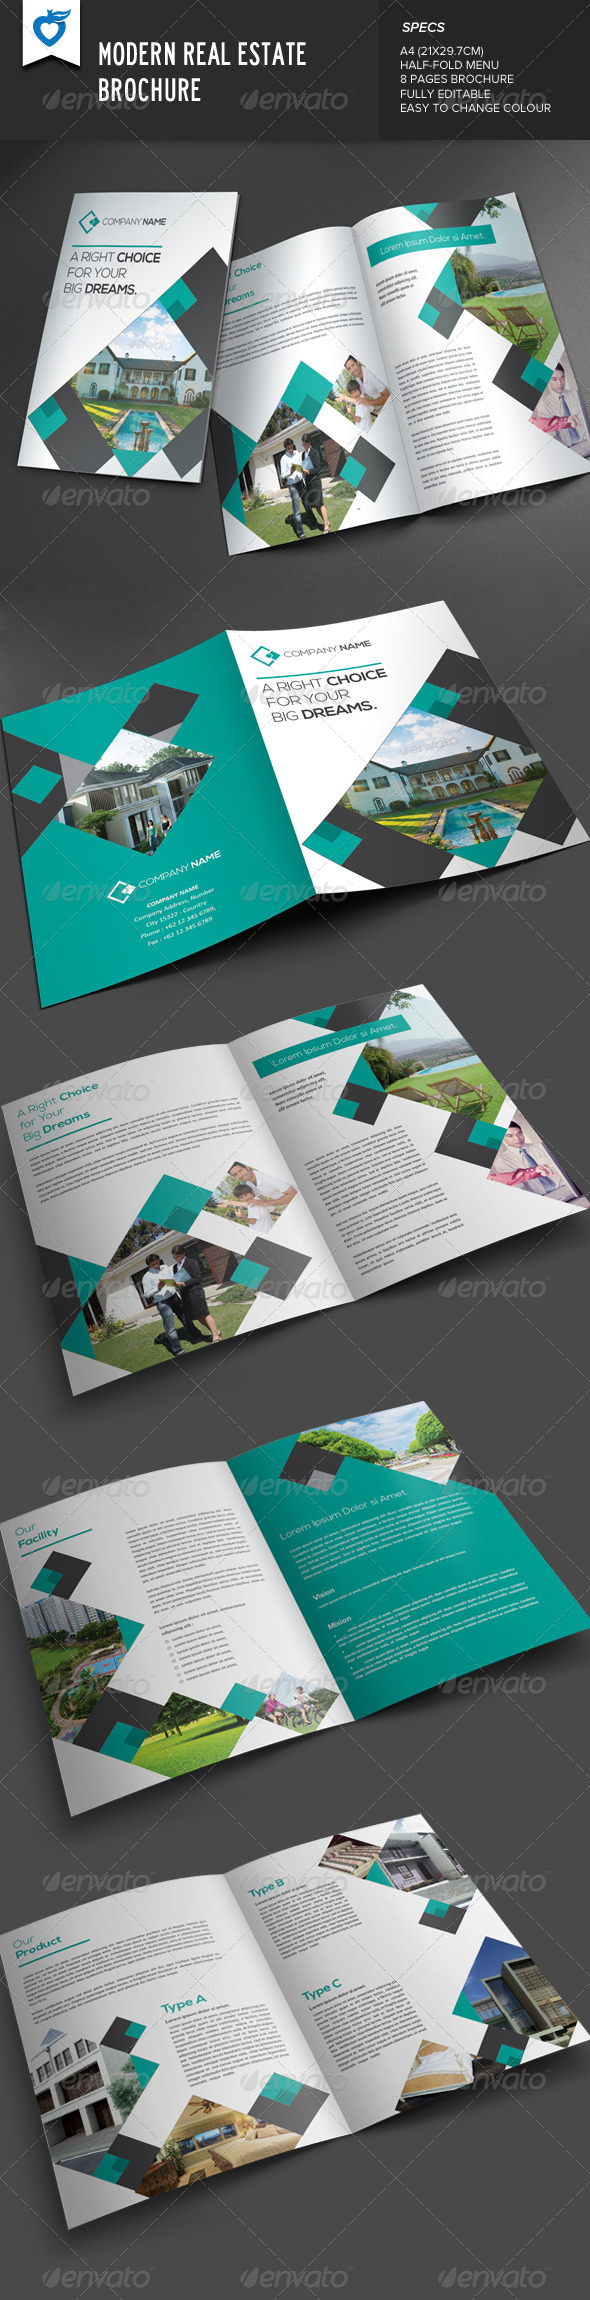 Modern Real Estate Brochure - Corporate Brochures